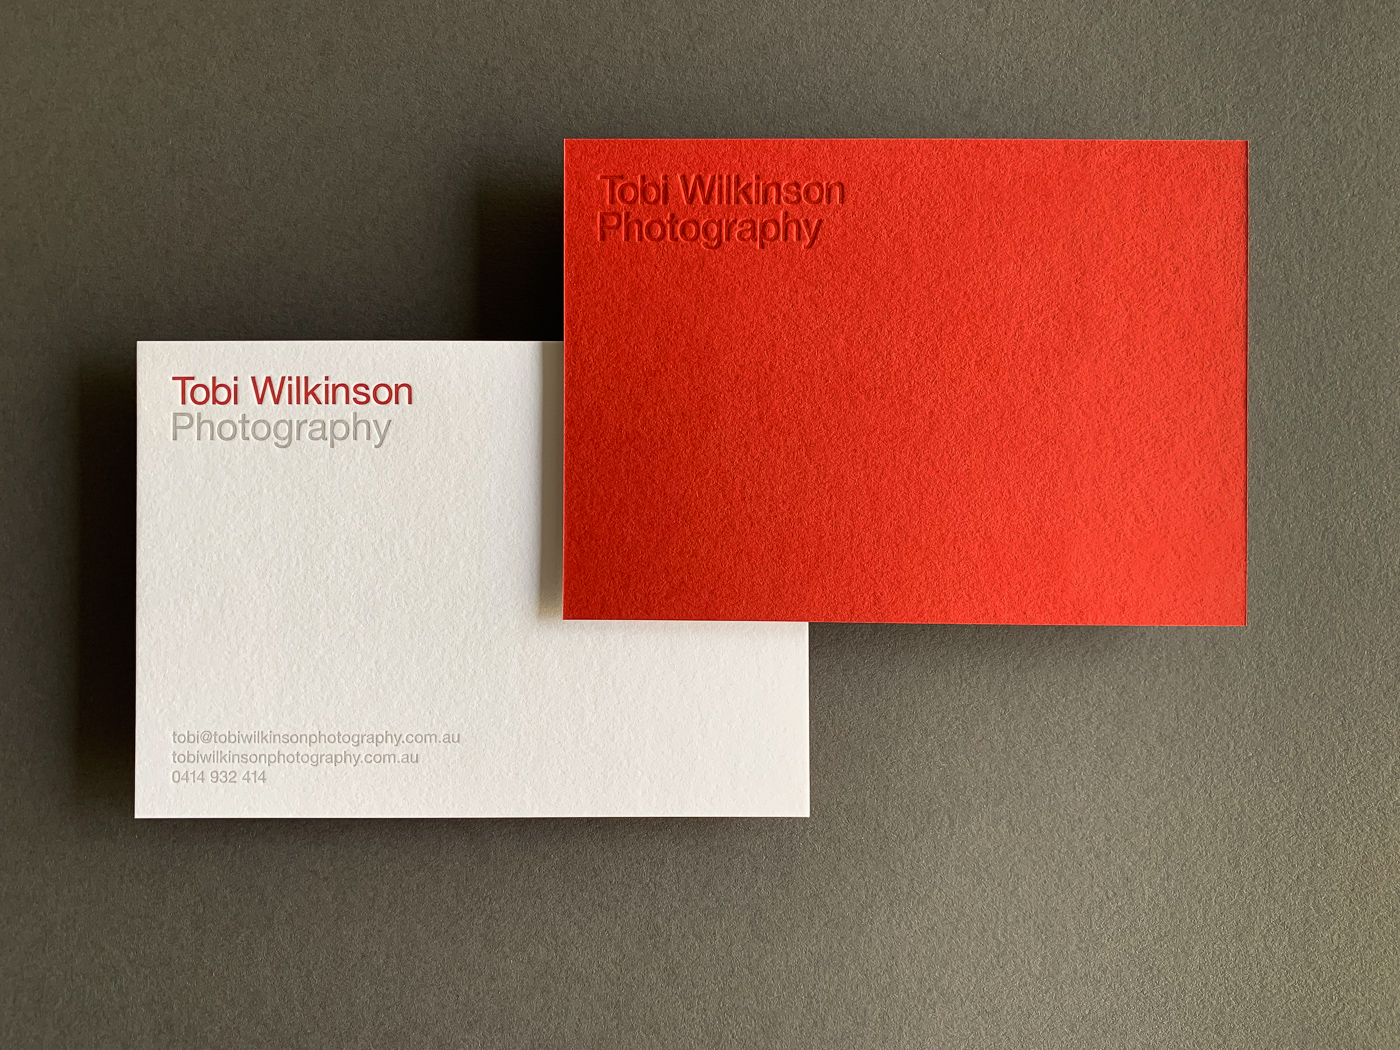 With compliments cards letterpress printed for Tobi Wilkinson on Colorplan Vermilion duplexed to Colorplan Pristine White 1